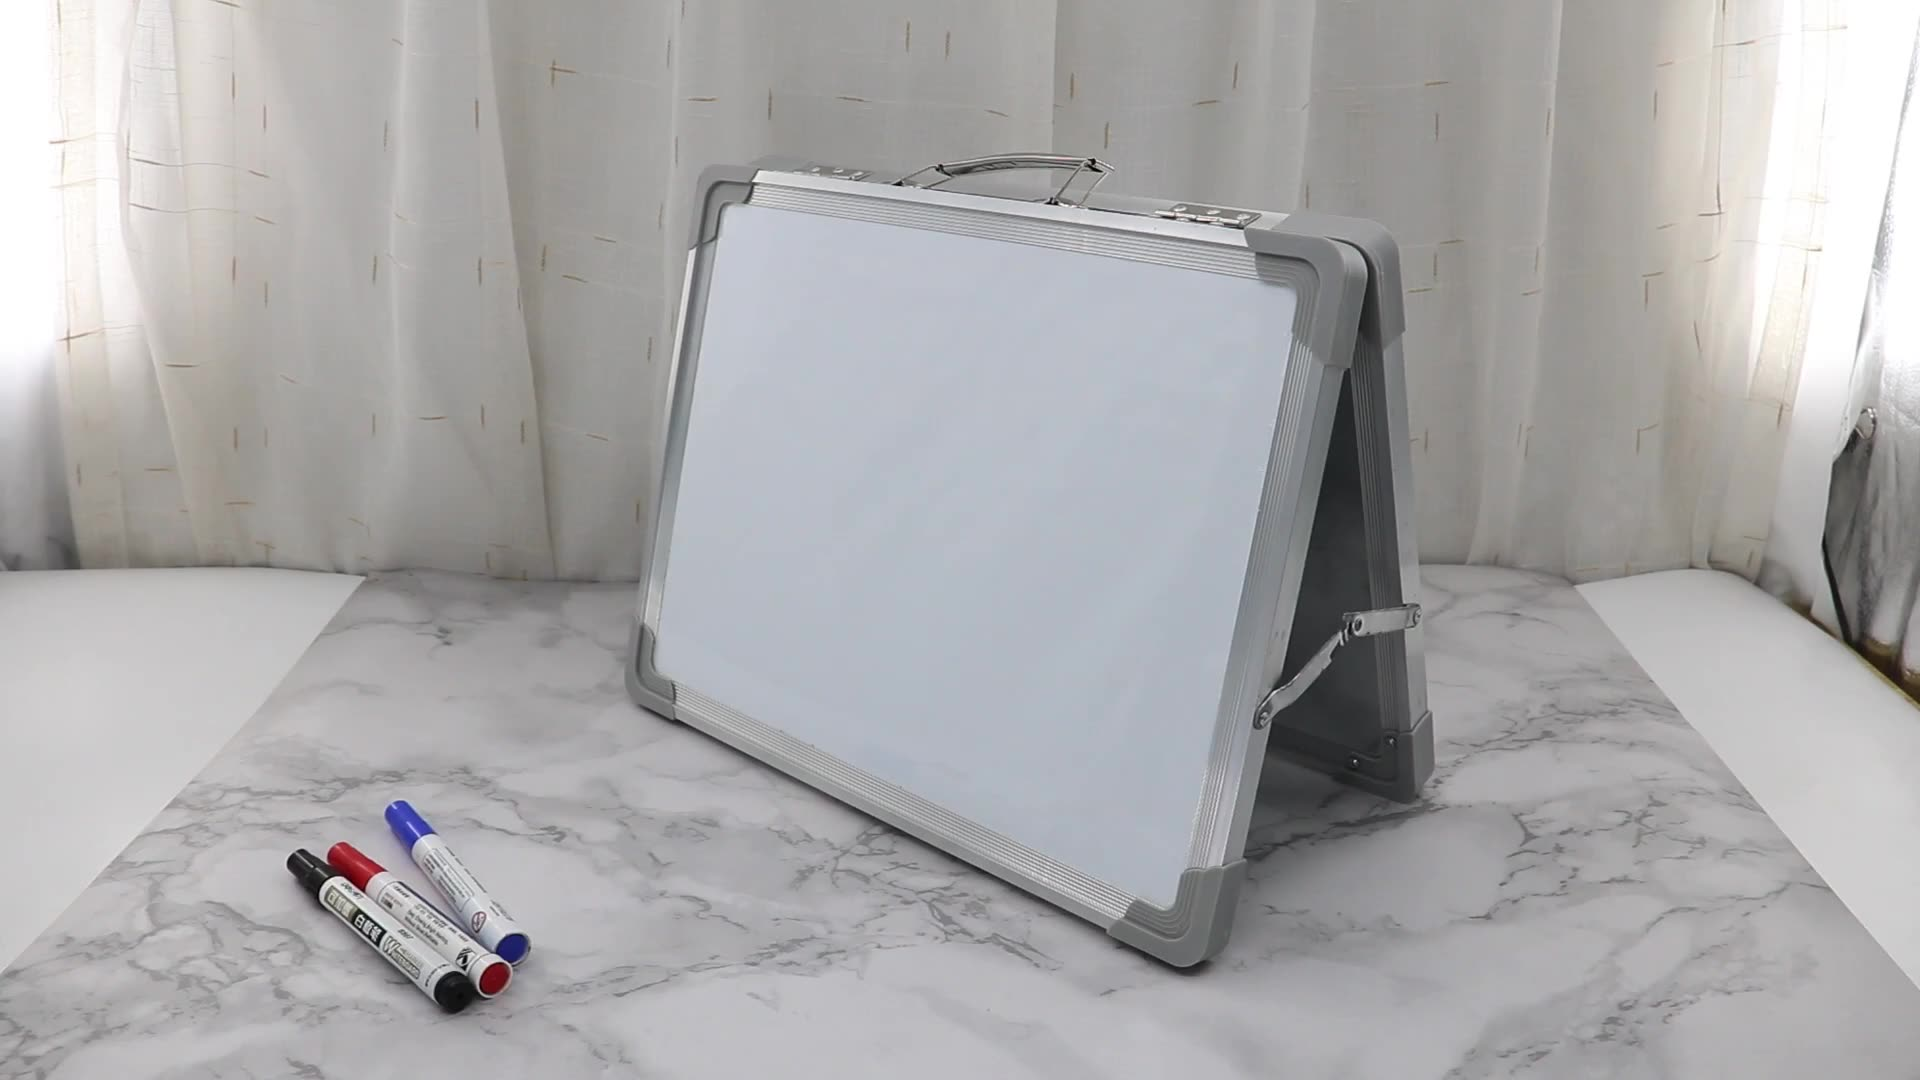 Small Desktop Foldable Dry Erase White Board - Portable Mini Double Sided Magnetic Whiteboard  for Home Office